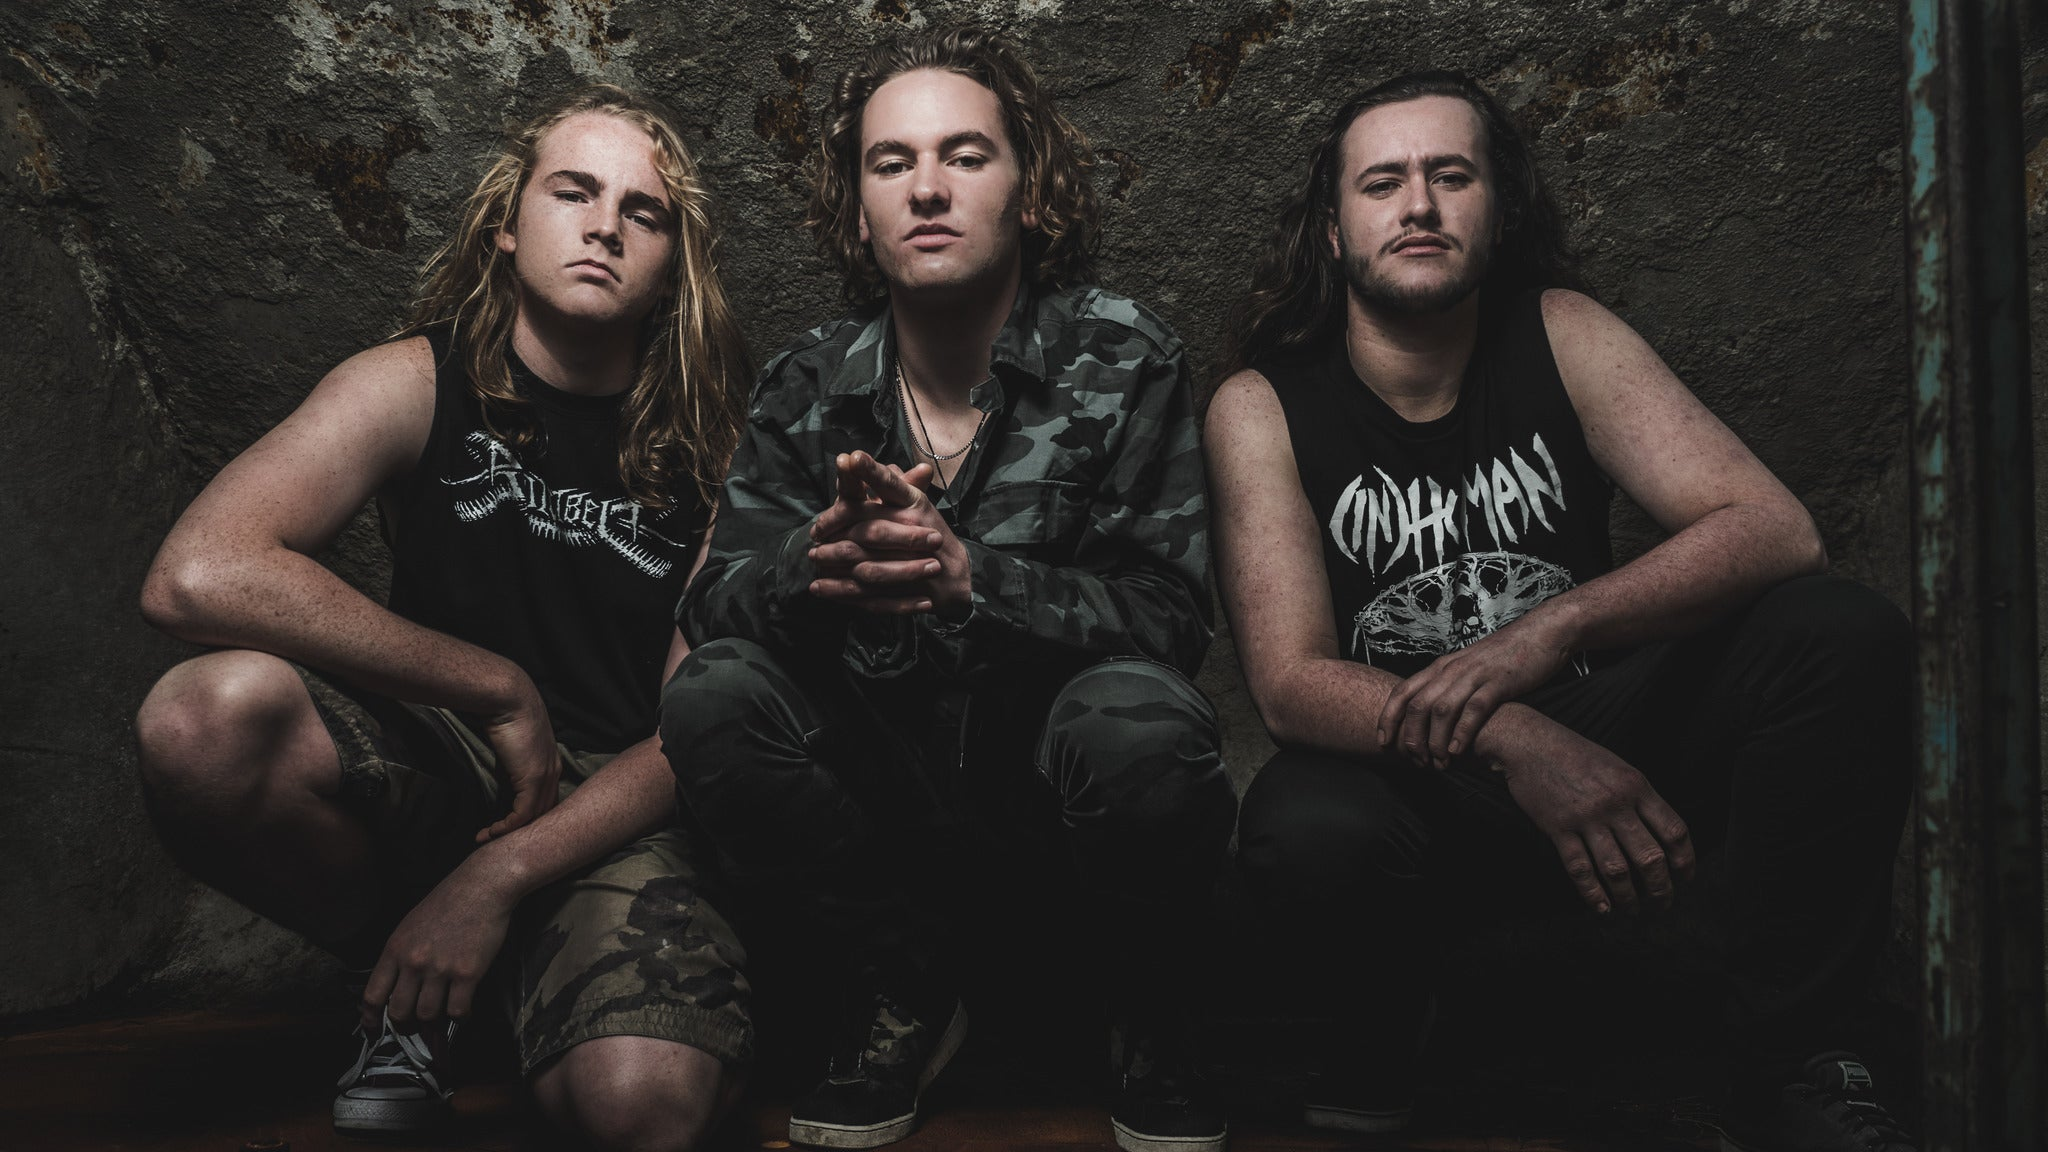 Alien Weaponry at Hawthorne Theatre